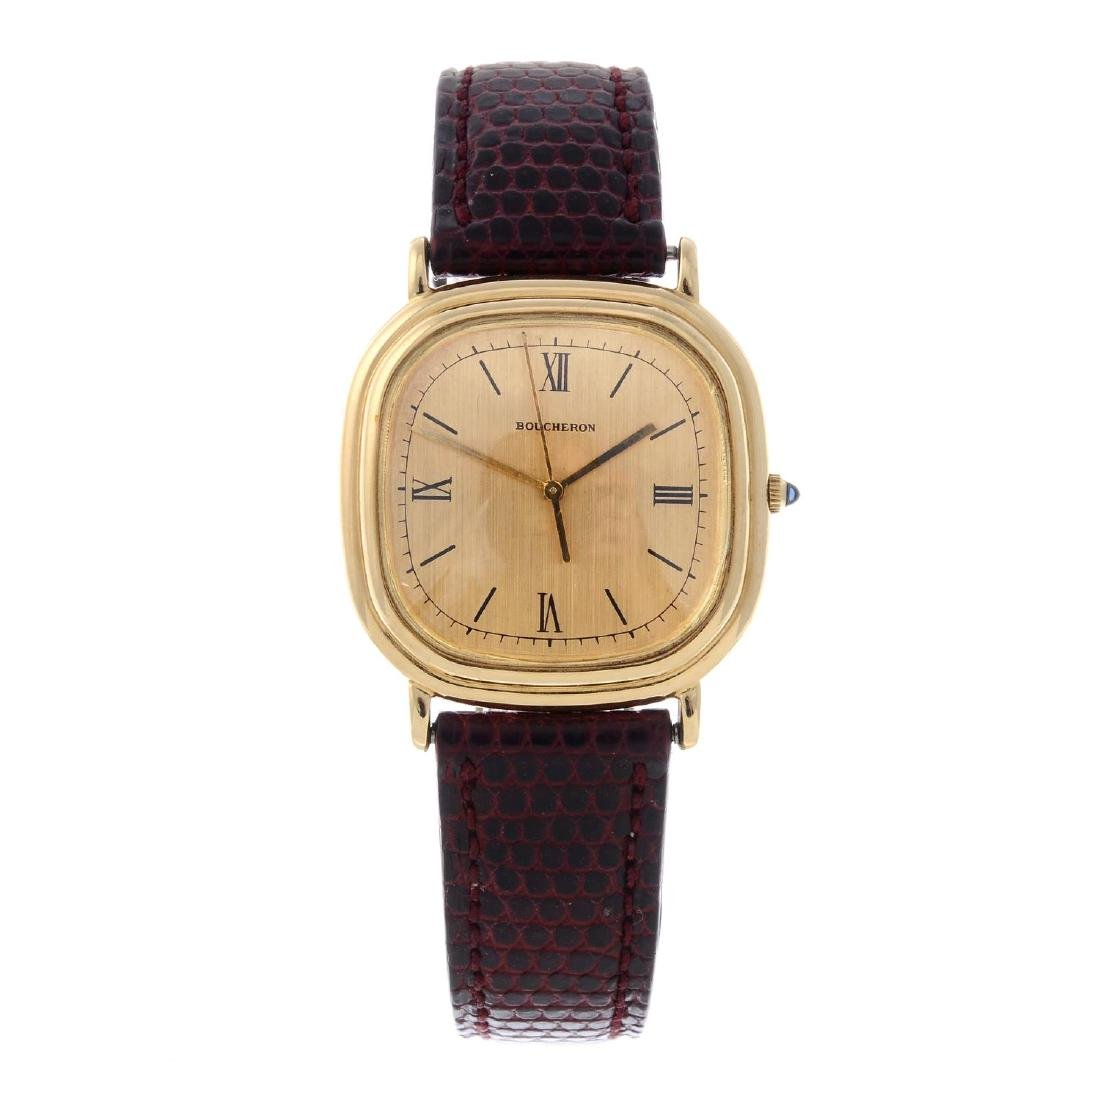 BOUCHERON - a gentleman's wrist watch. Yellow metal